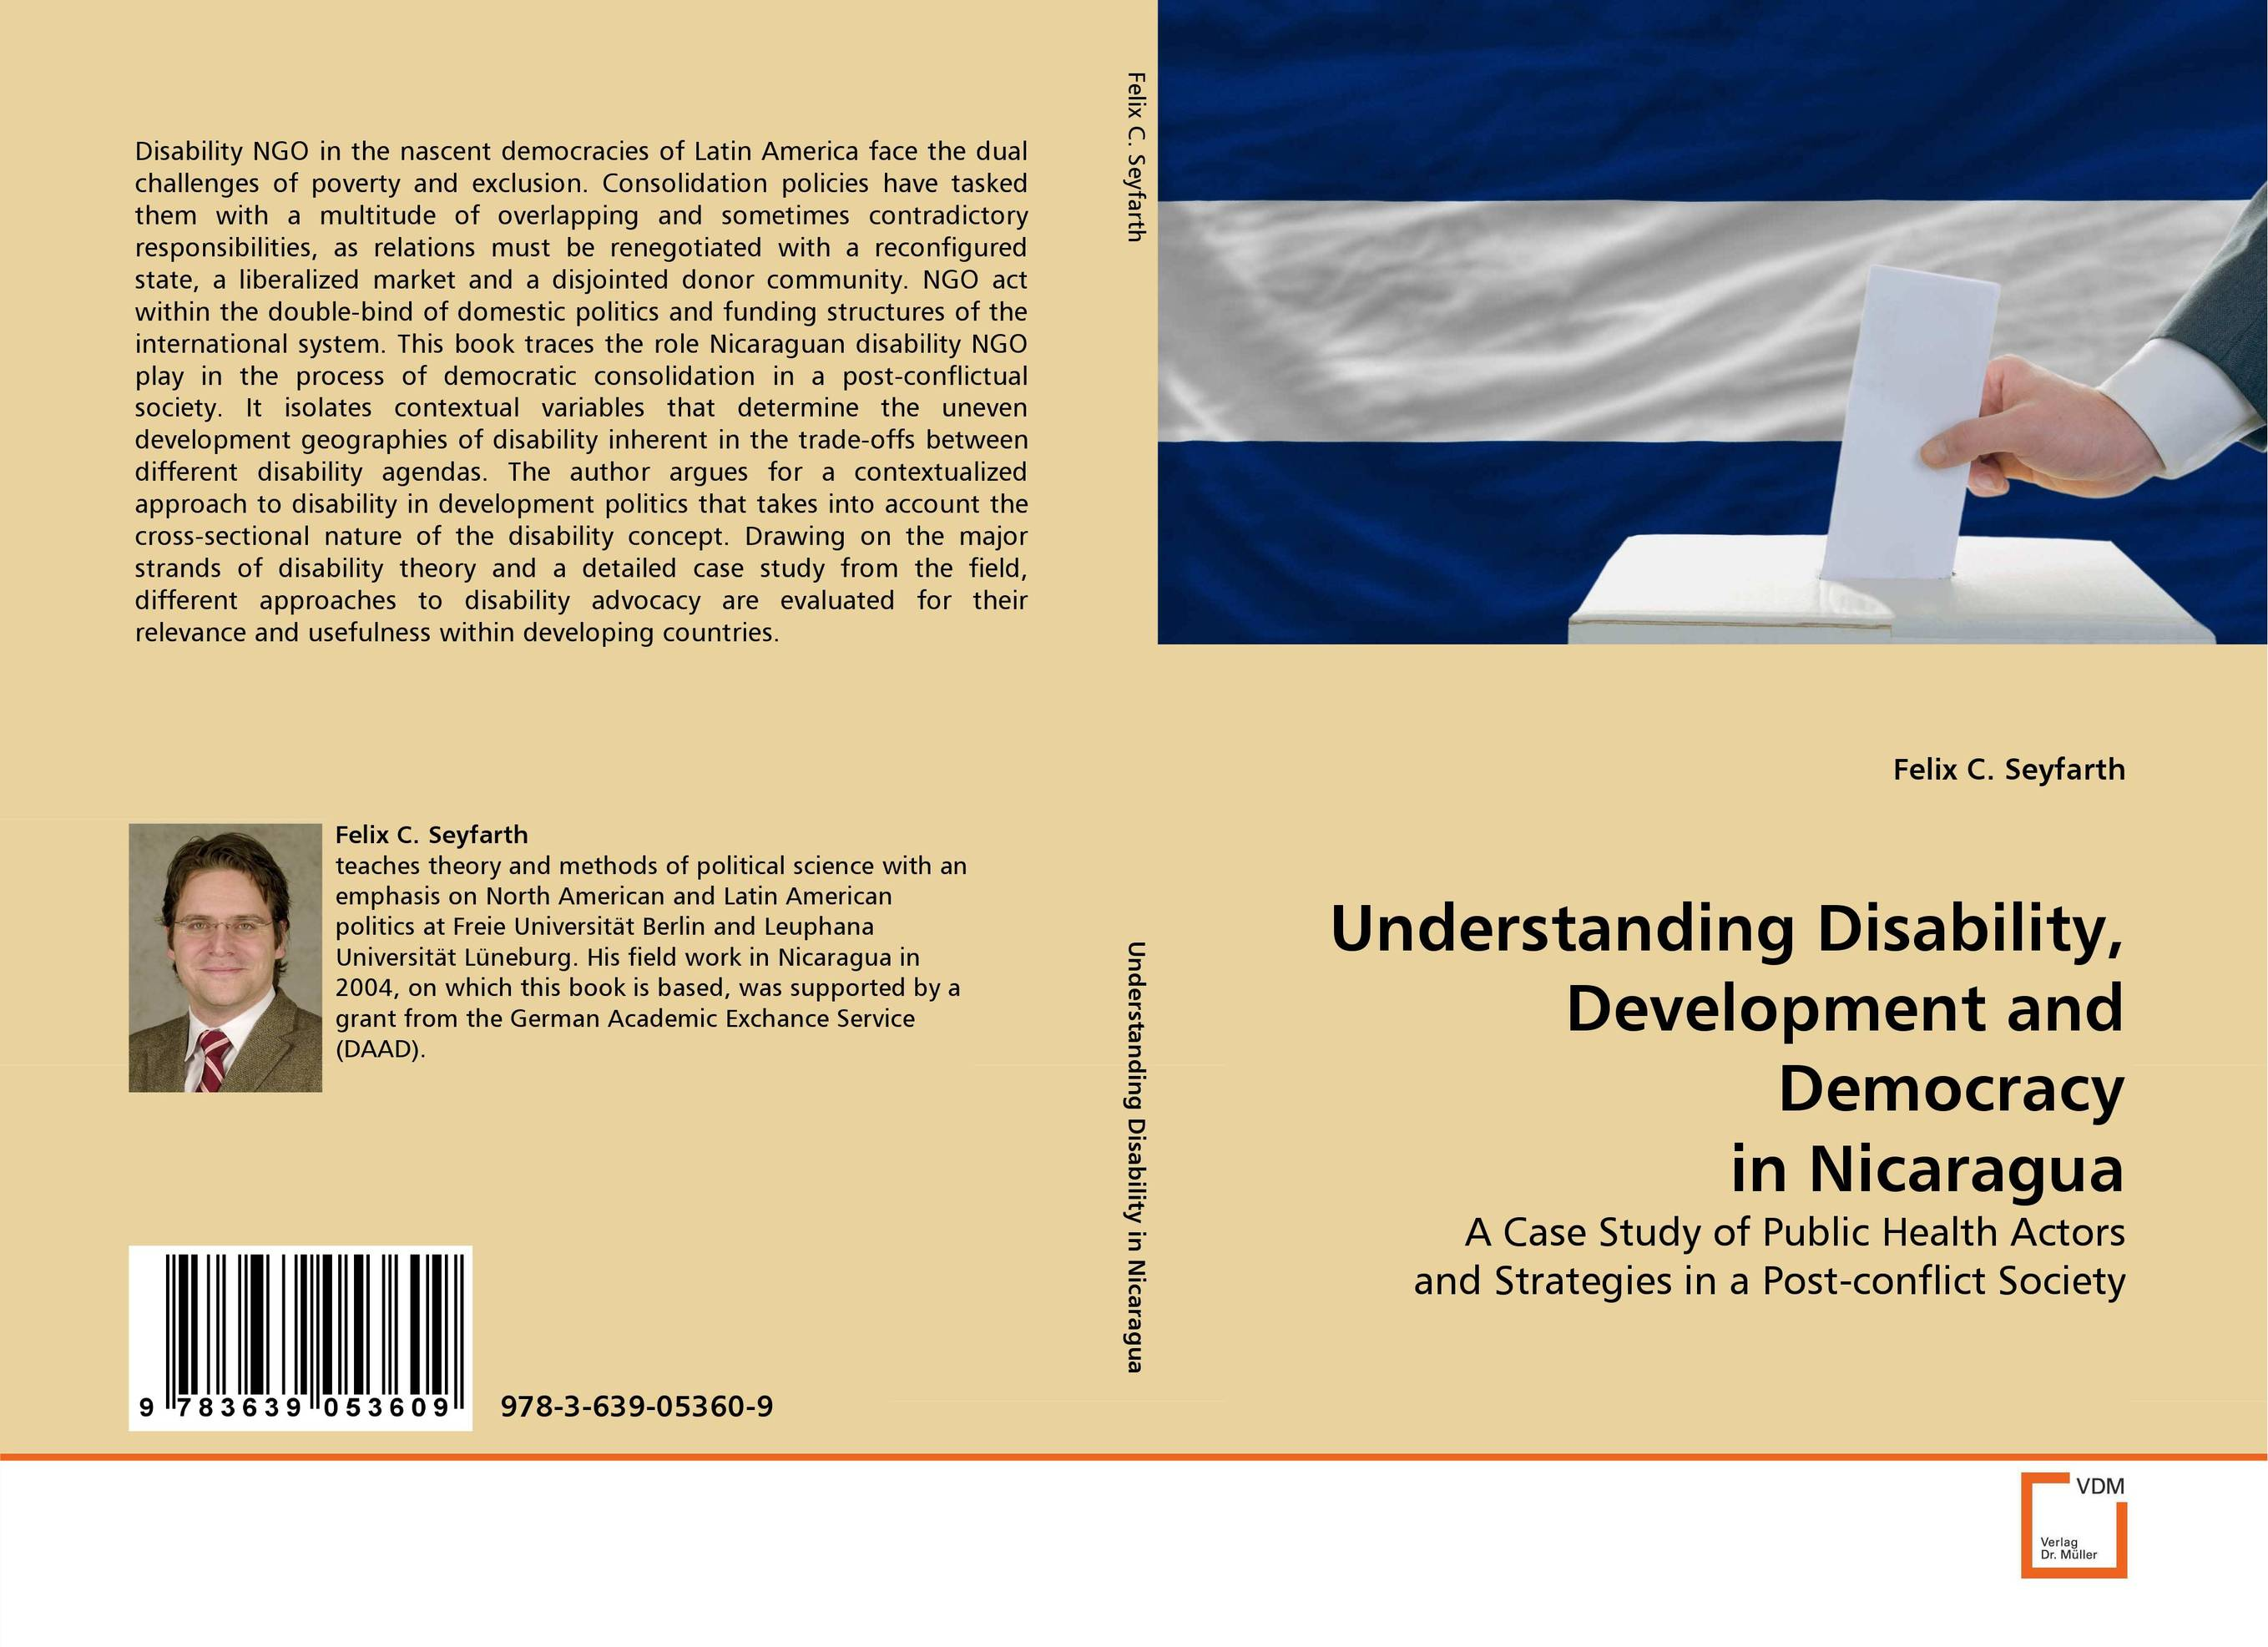 Understanding Disability, Development and Democracy in Nicaragua strict democracy burning the bridges in politics